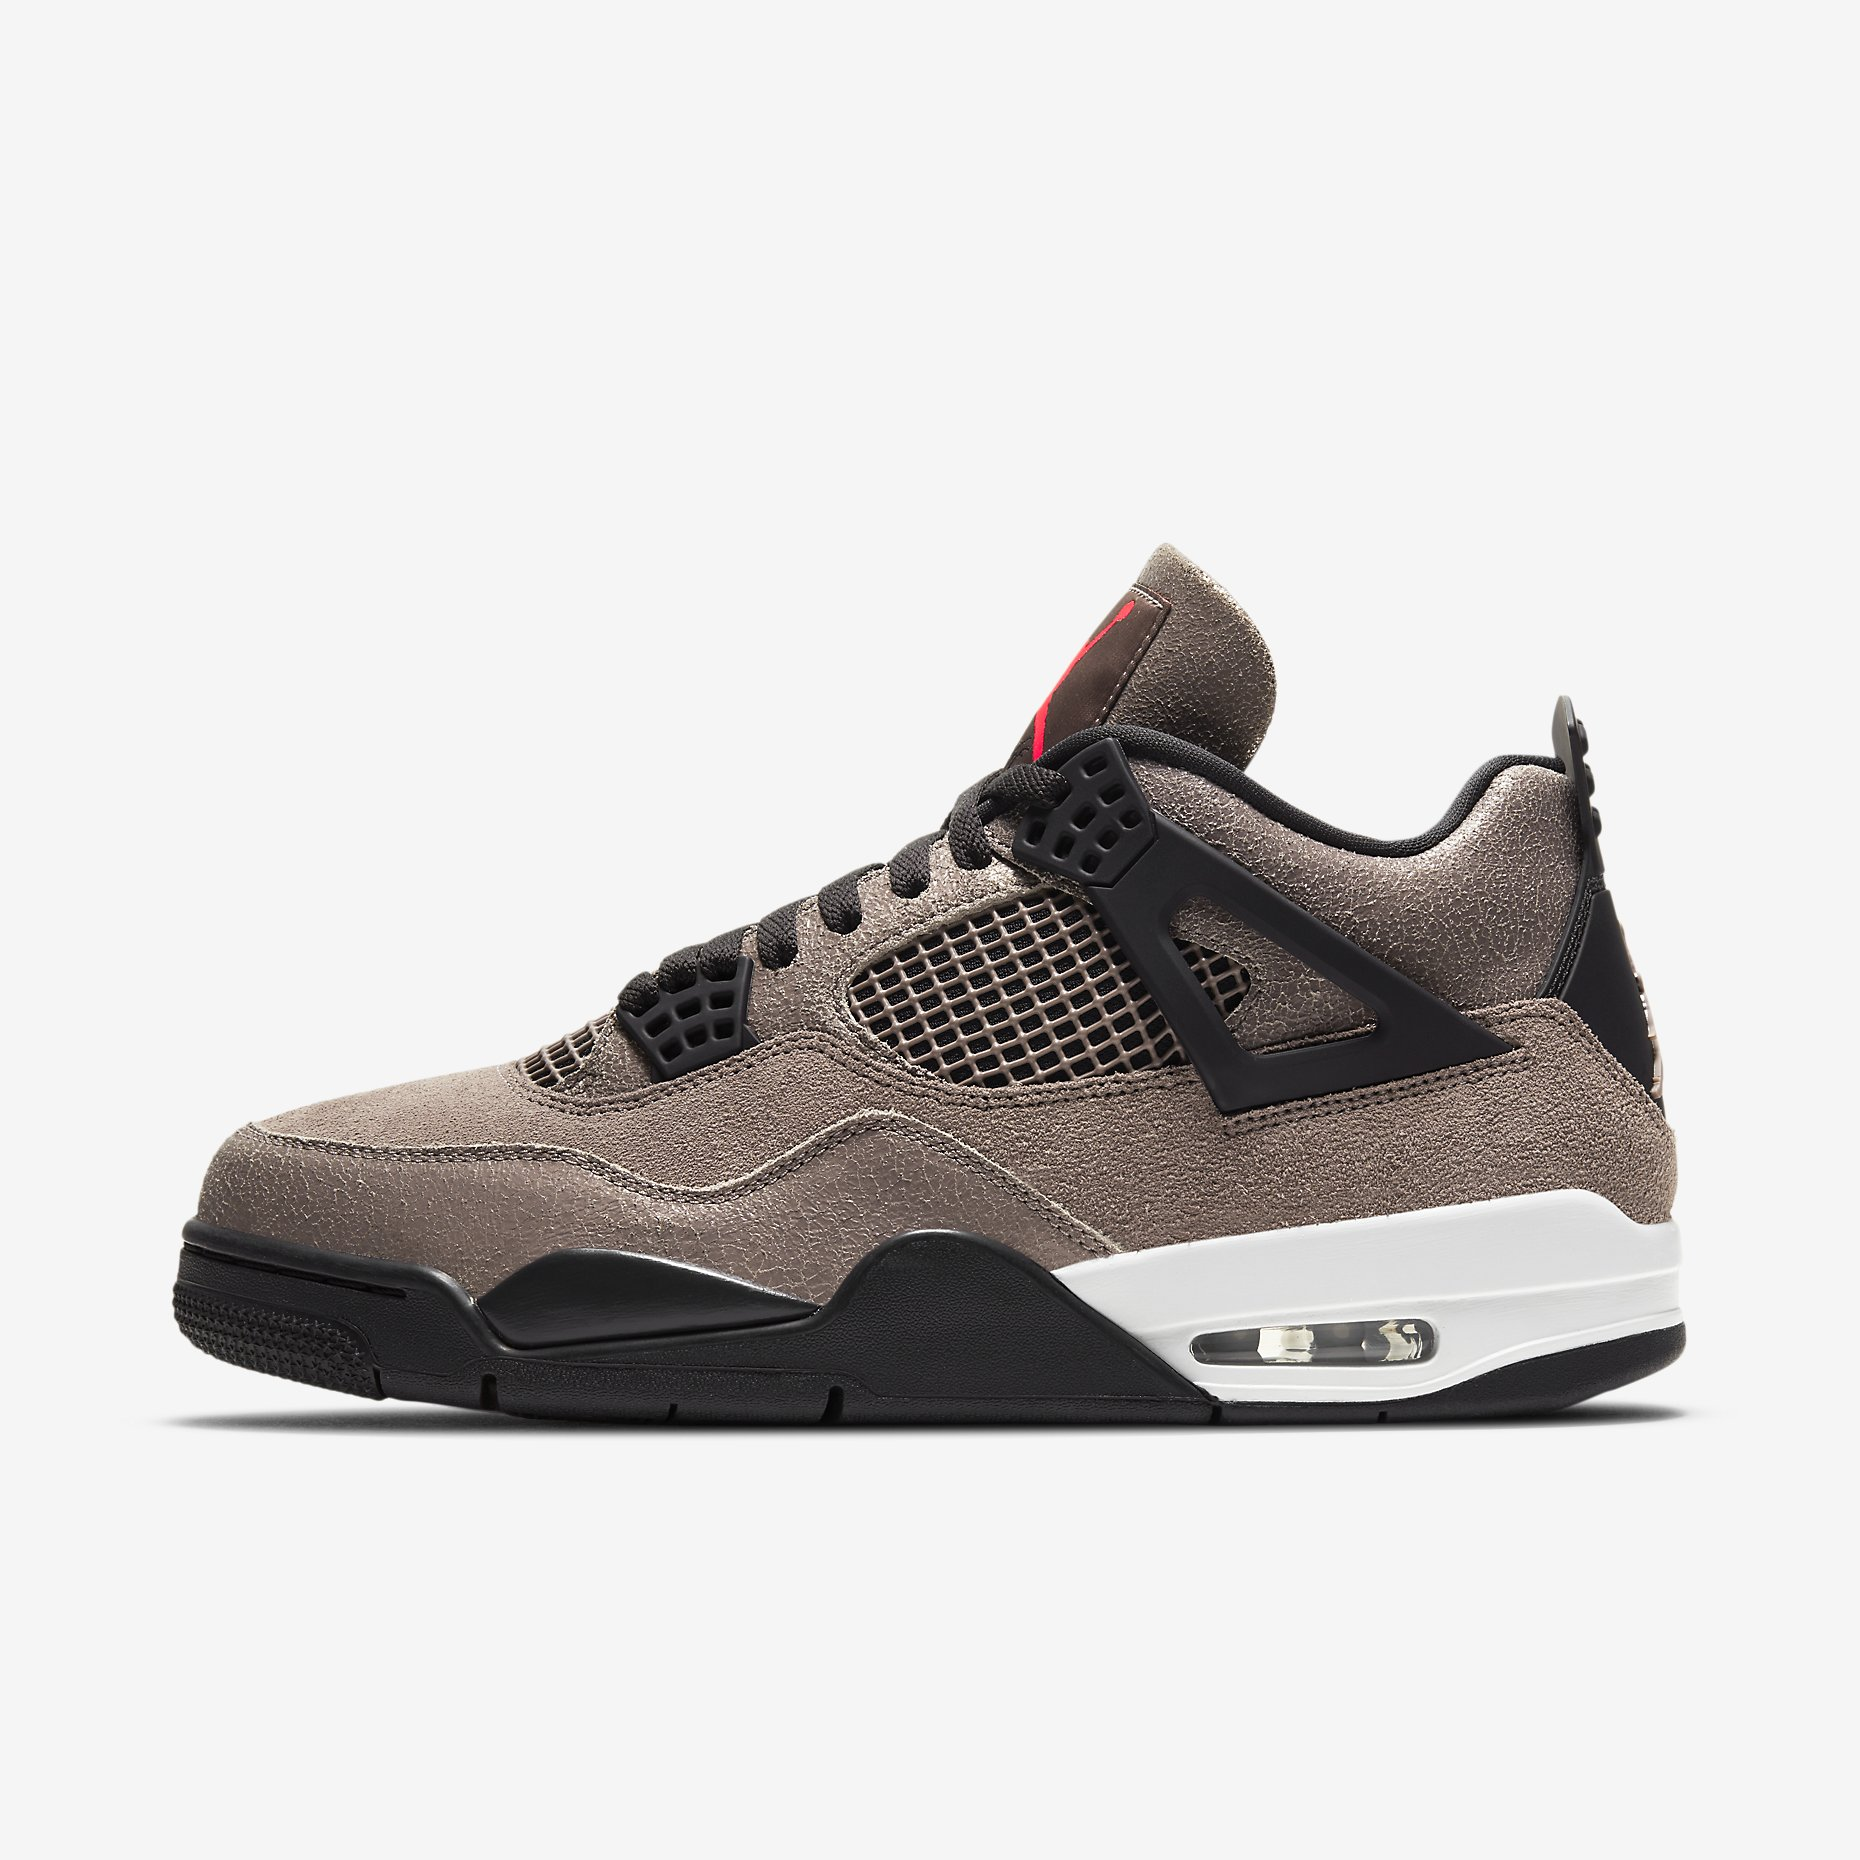 Air Jordan 4 Retro 'Taupe Haze'	}